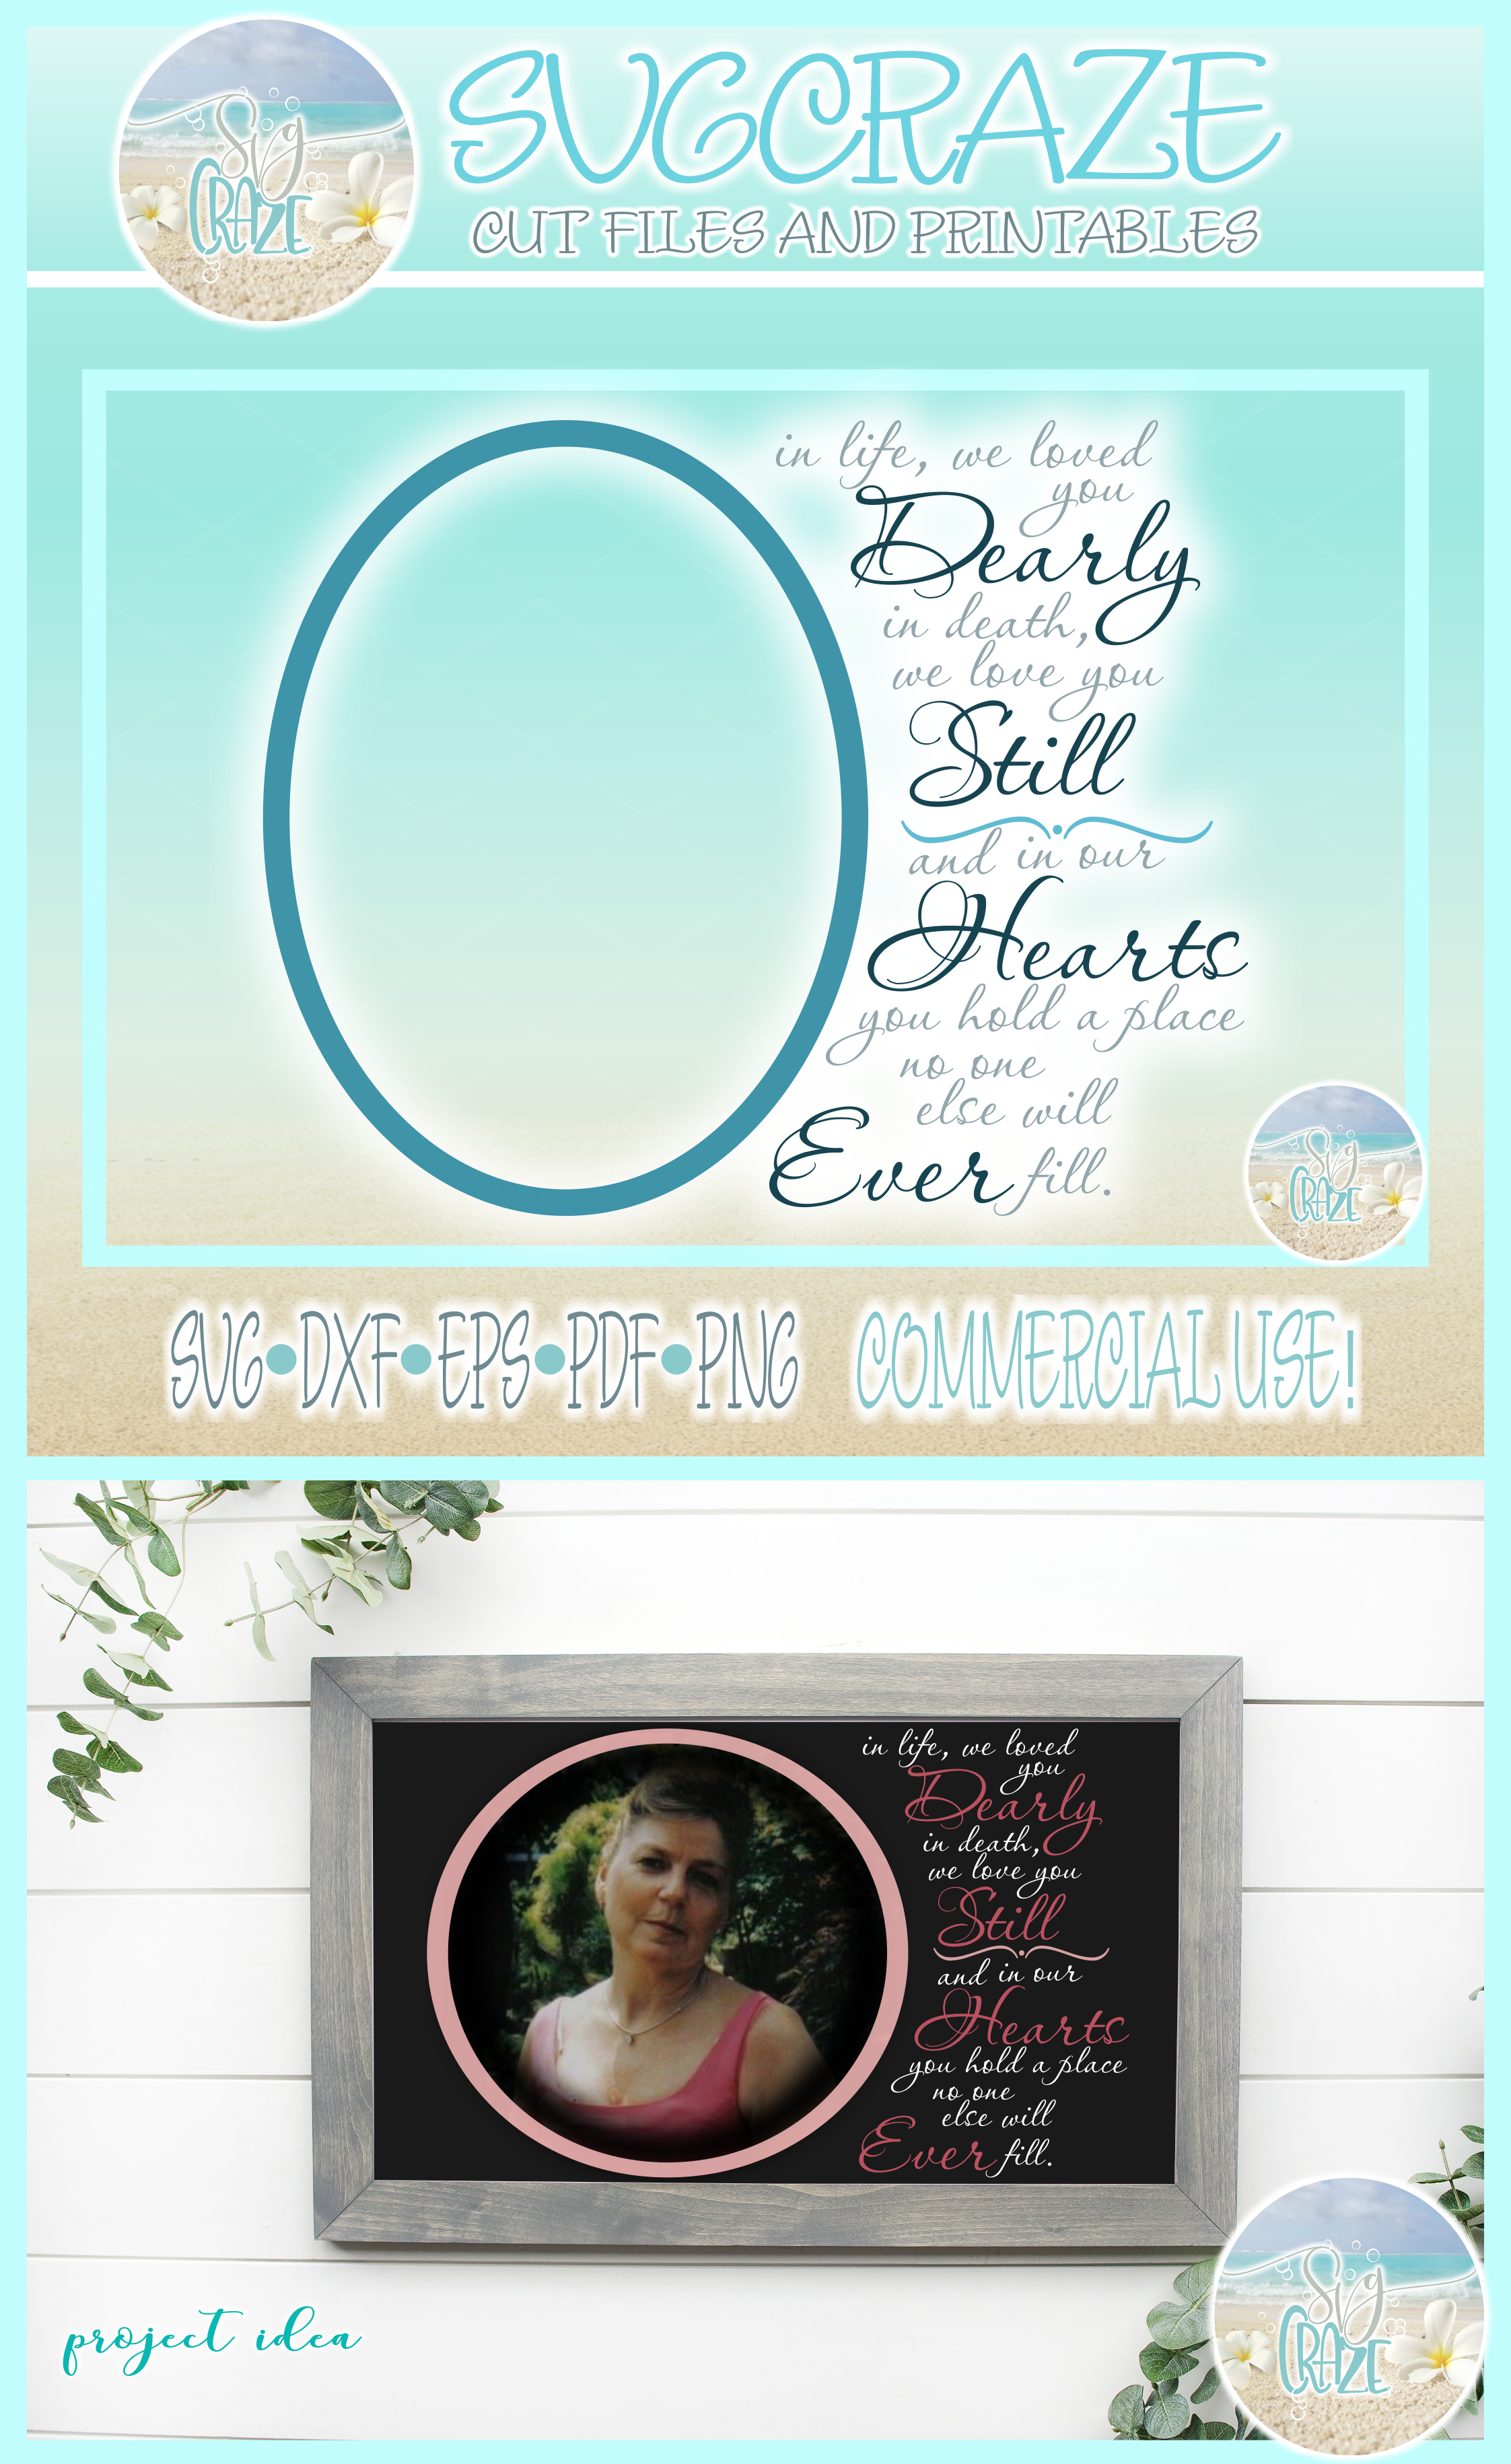 Memorial Quote Loved You Dearly Love You Still SVG example image 4